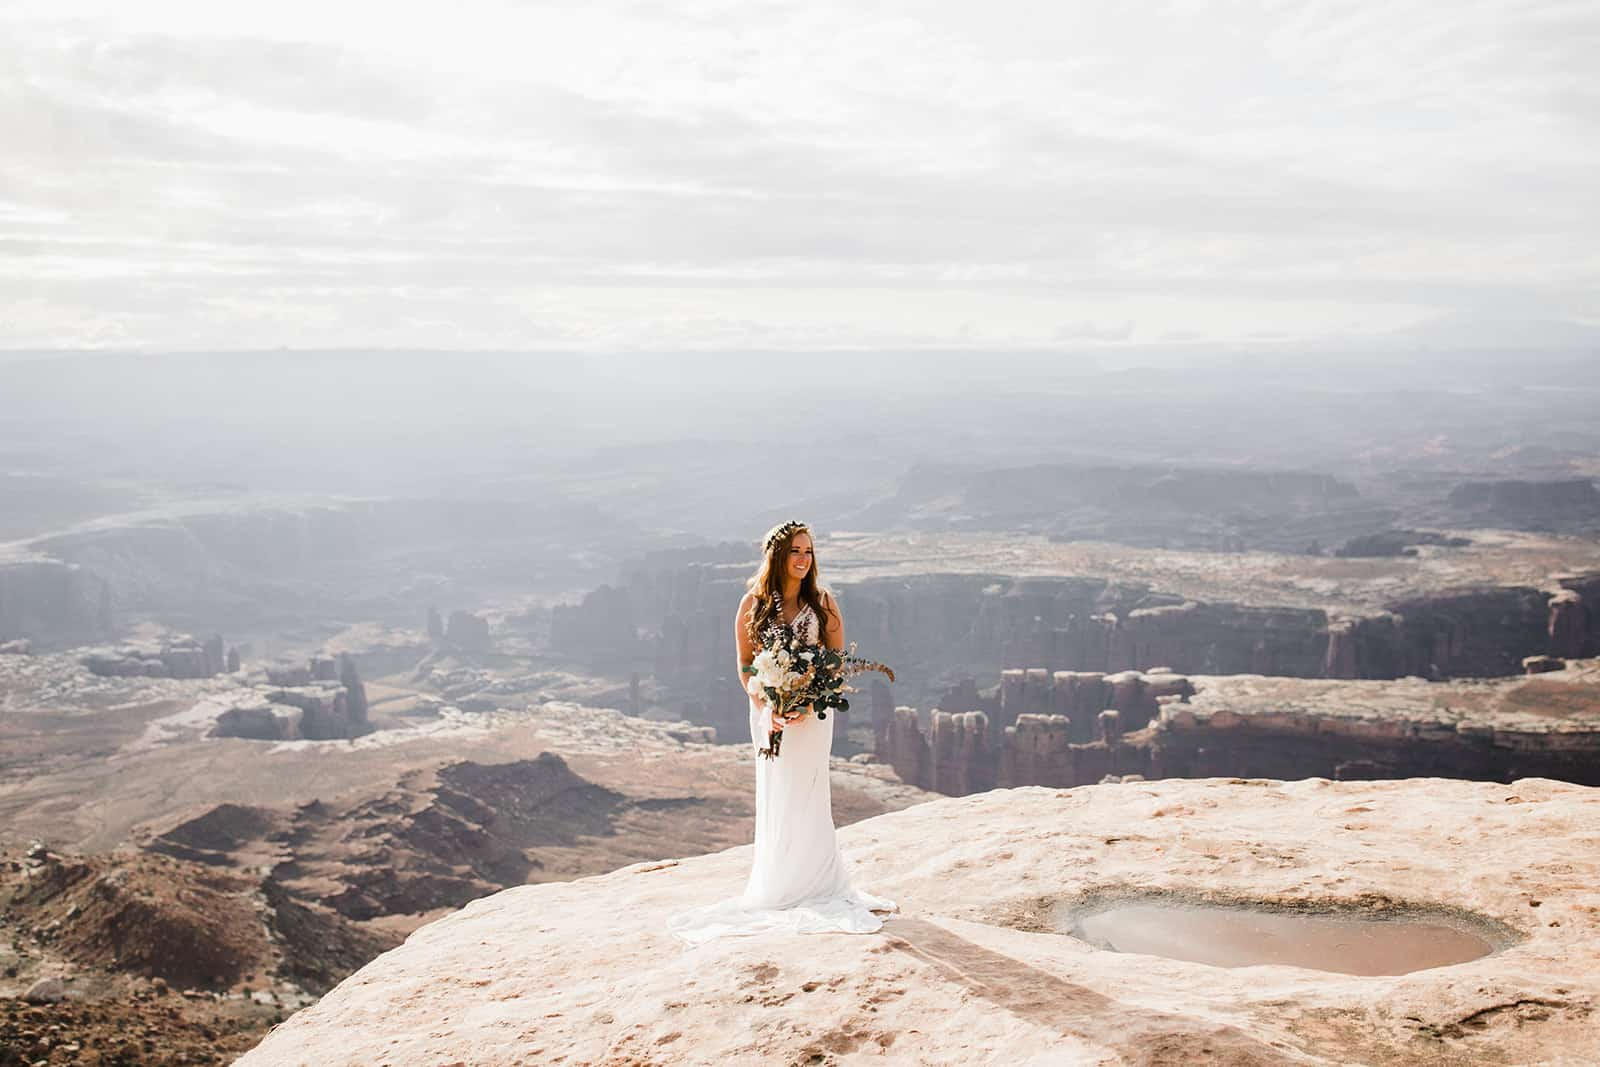 Yosemite National Park Moab Utah Weddings and Desert Elopements The Hearnes Intimate Wedding Photographers 7